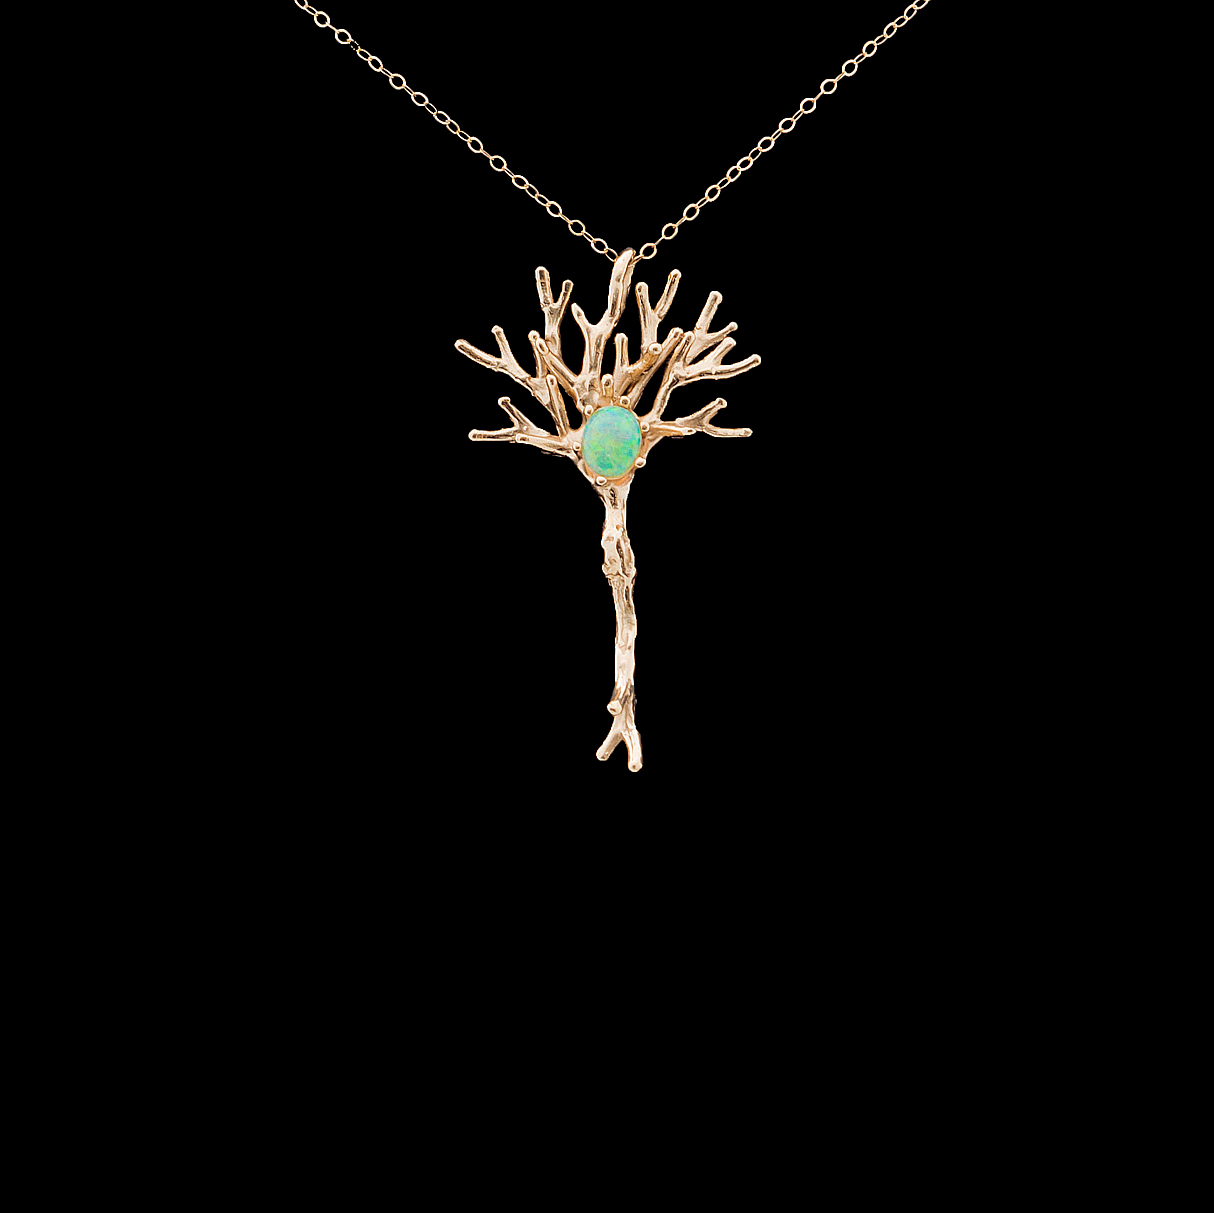 Neuron Pendant | Yellow gold, Australian opal.